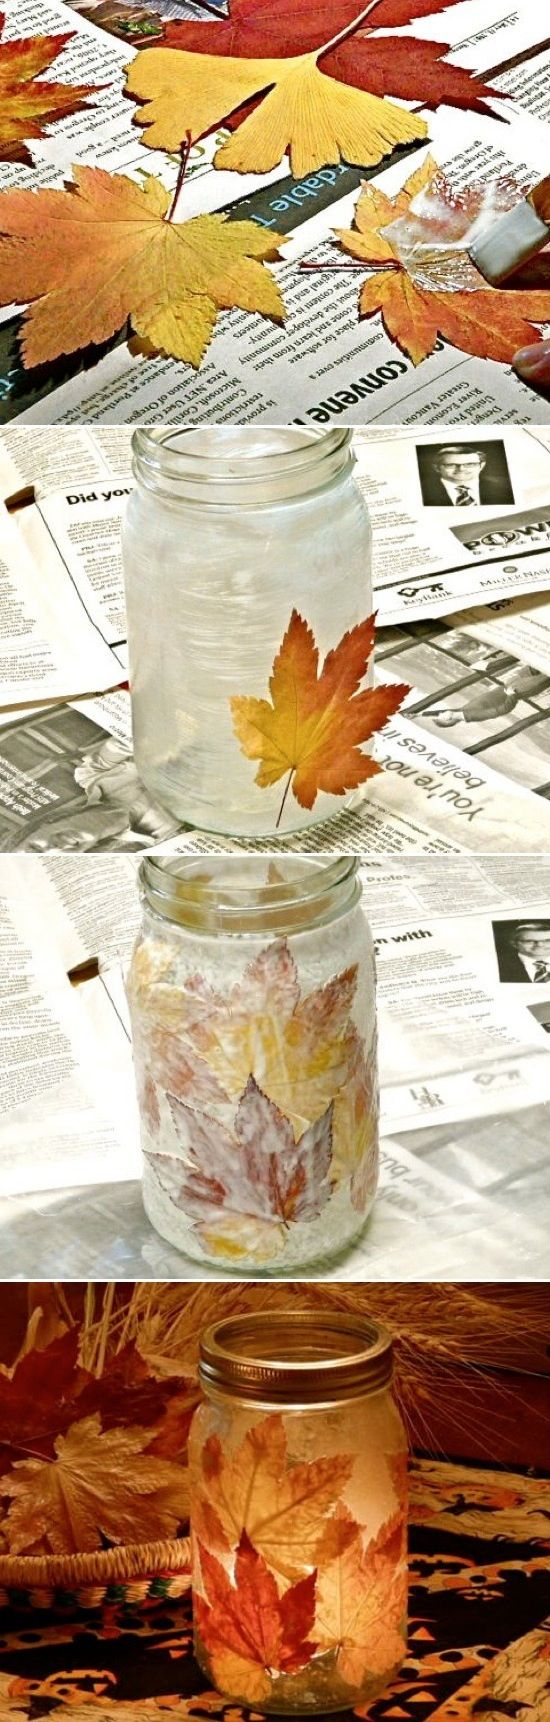 I Love collecting leaves never knew what to do with them!